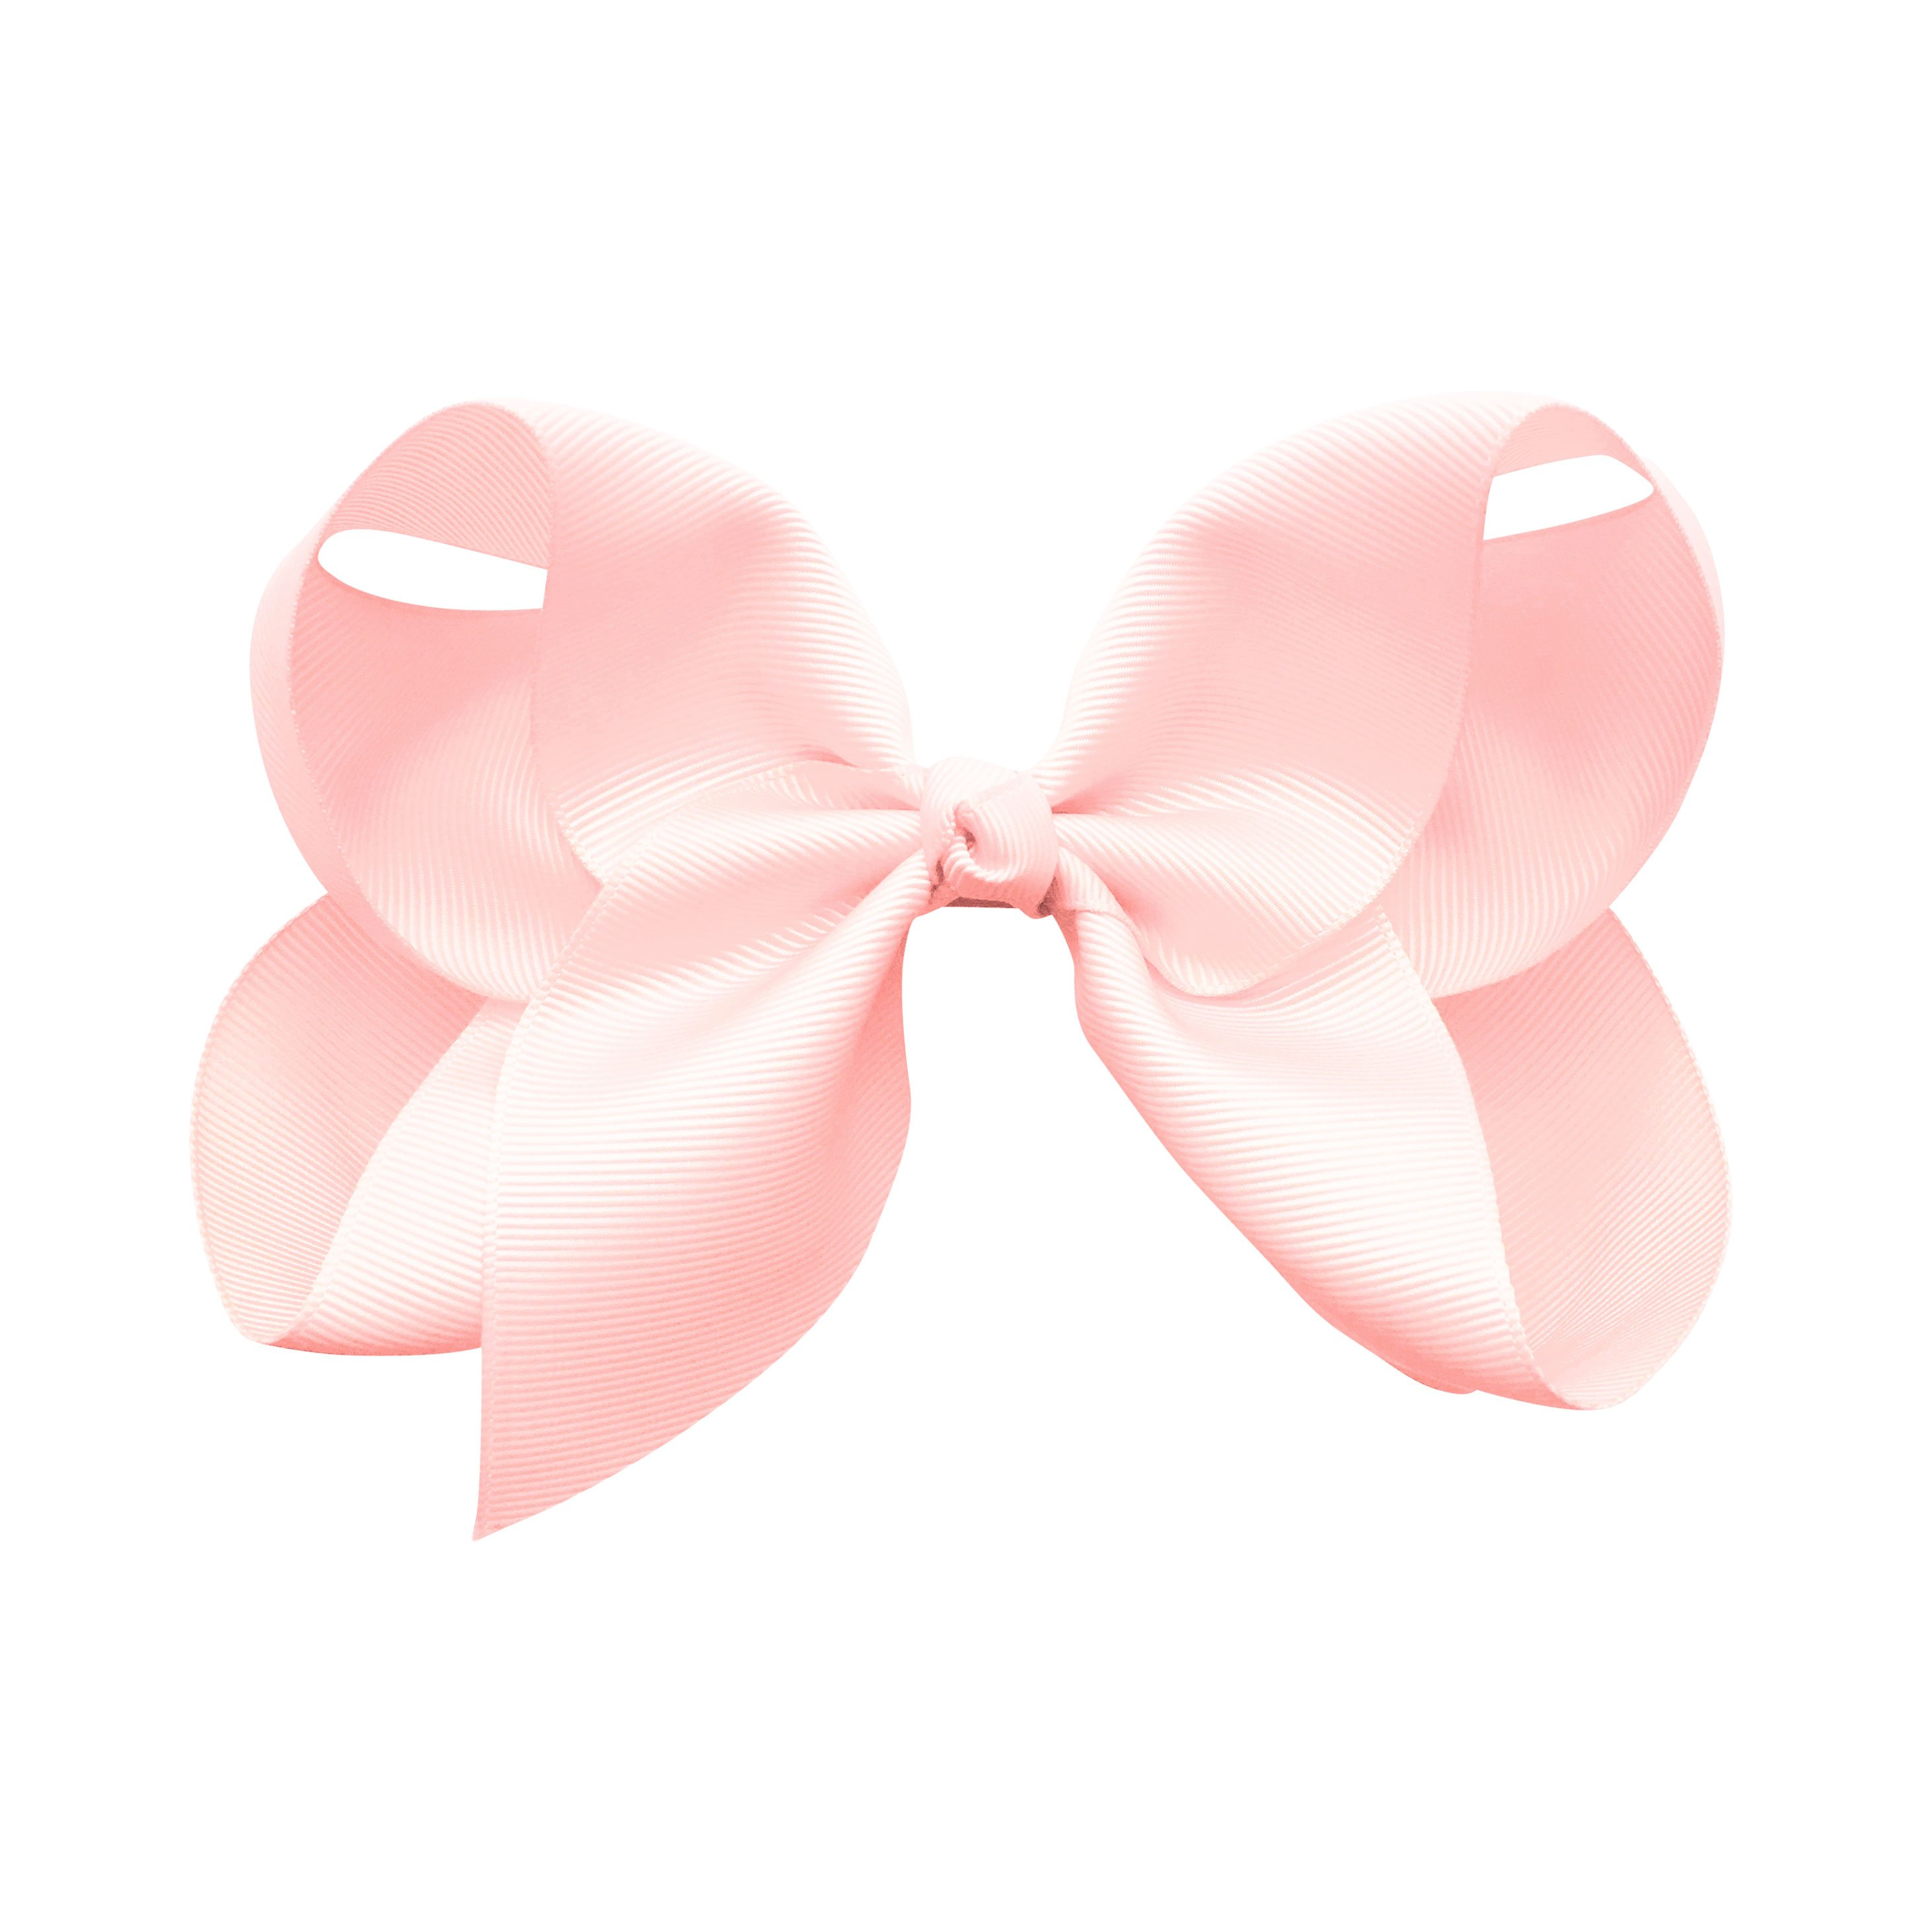 Image of Jumbo Boutique Bow - alligator clip - Powder Pink